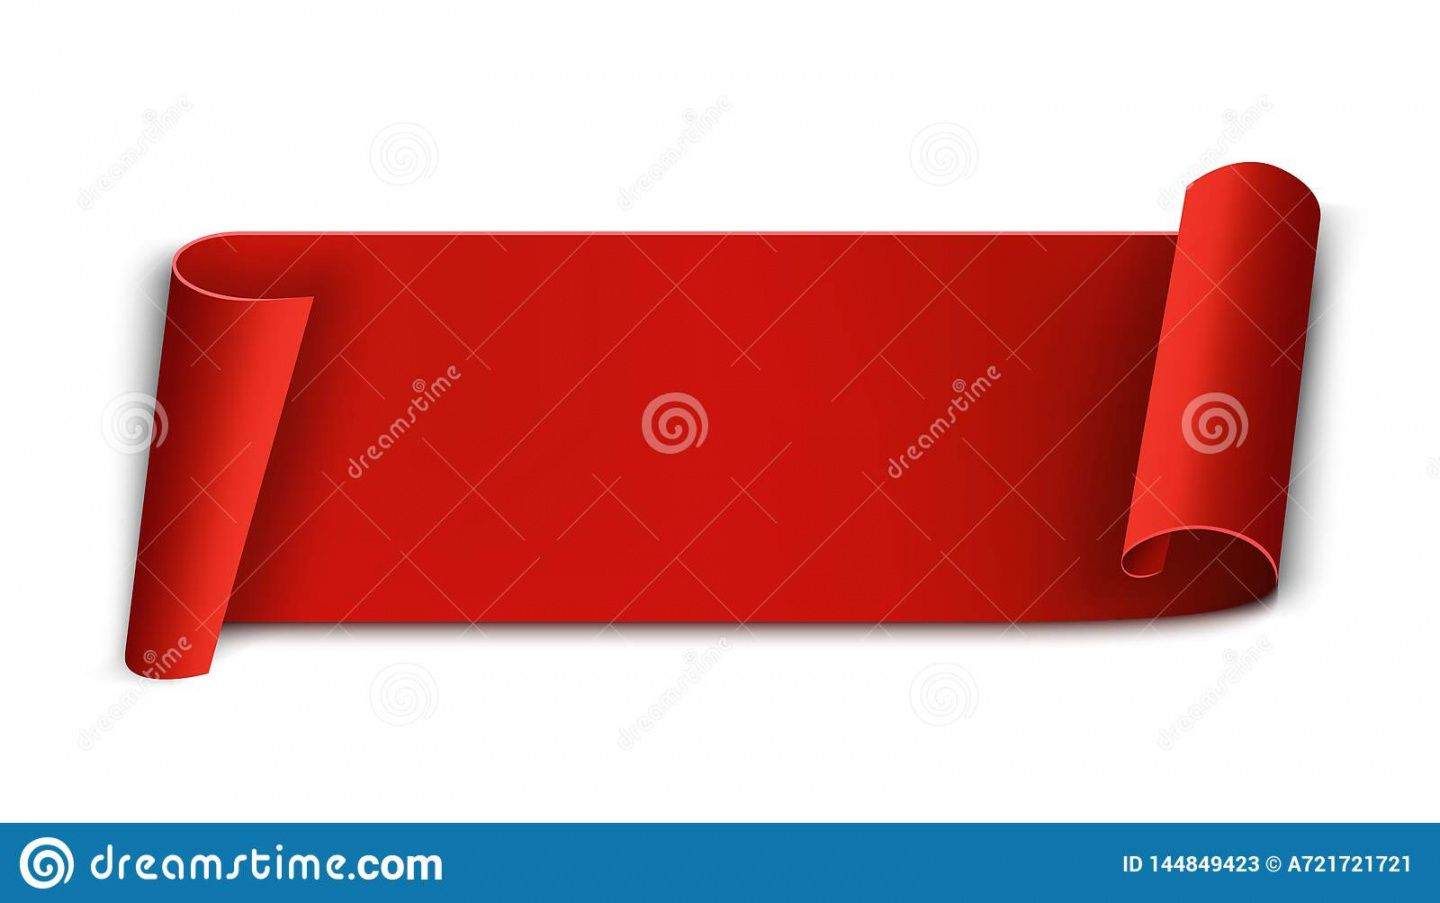 editable creative illustration of realistic curved paper ribbon curved banner template doc